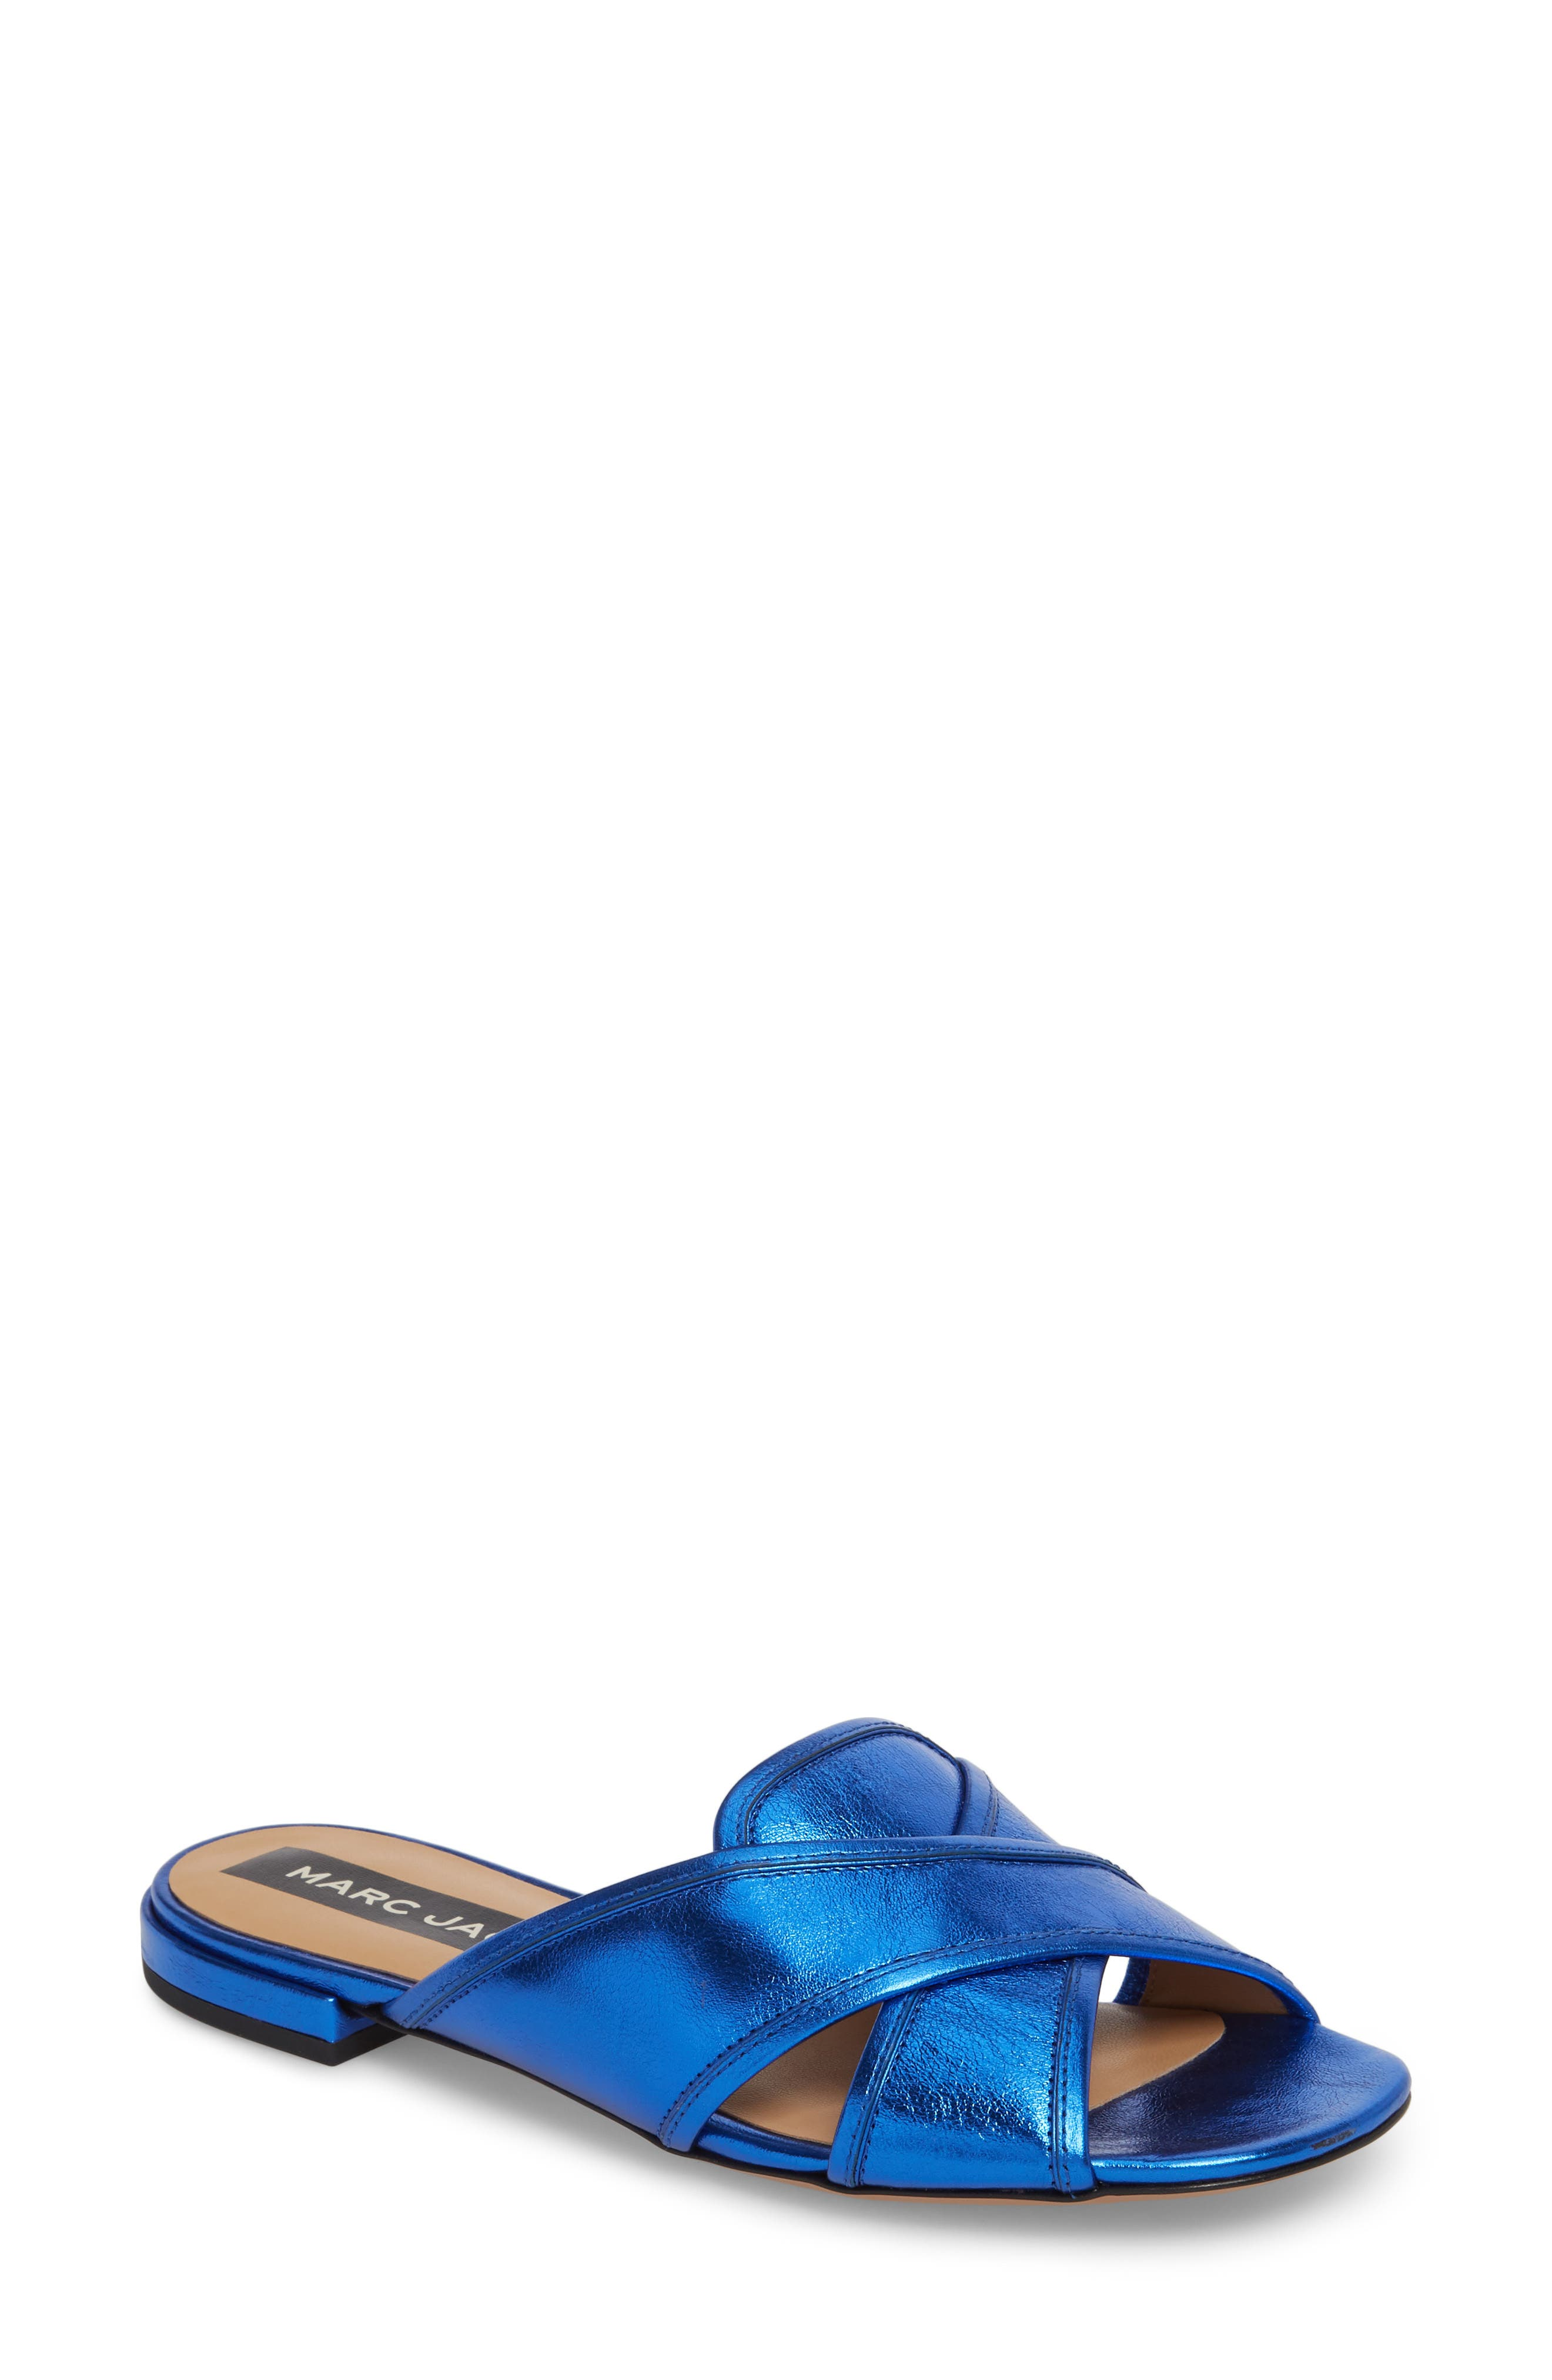 MARC JACOBS Aurora Metallic Slide Sandal (Women)